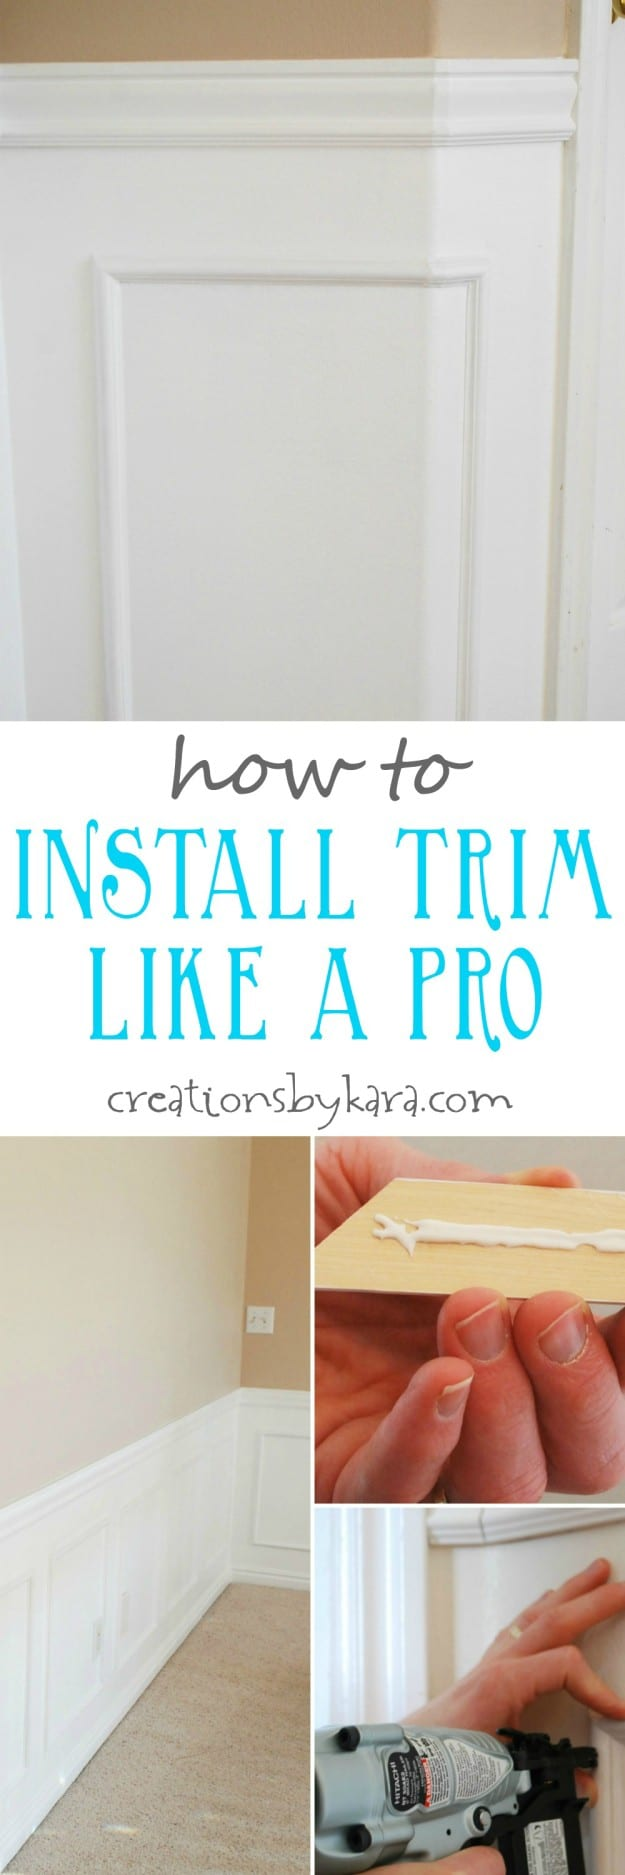 Tips and tricks for installing molding and trim like a pro. A great DIY tutorial!